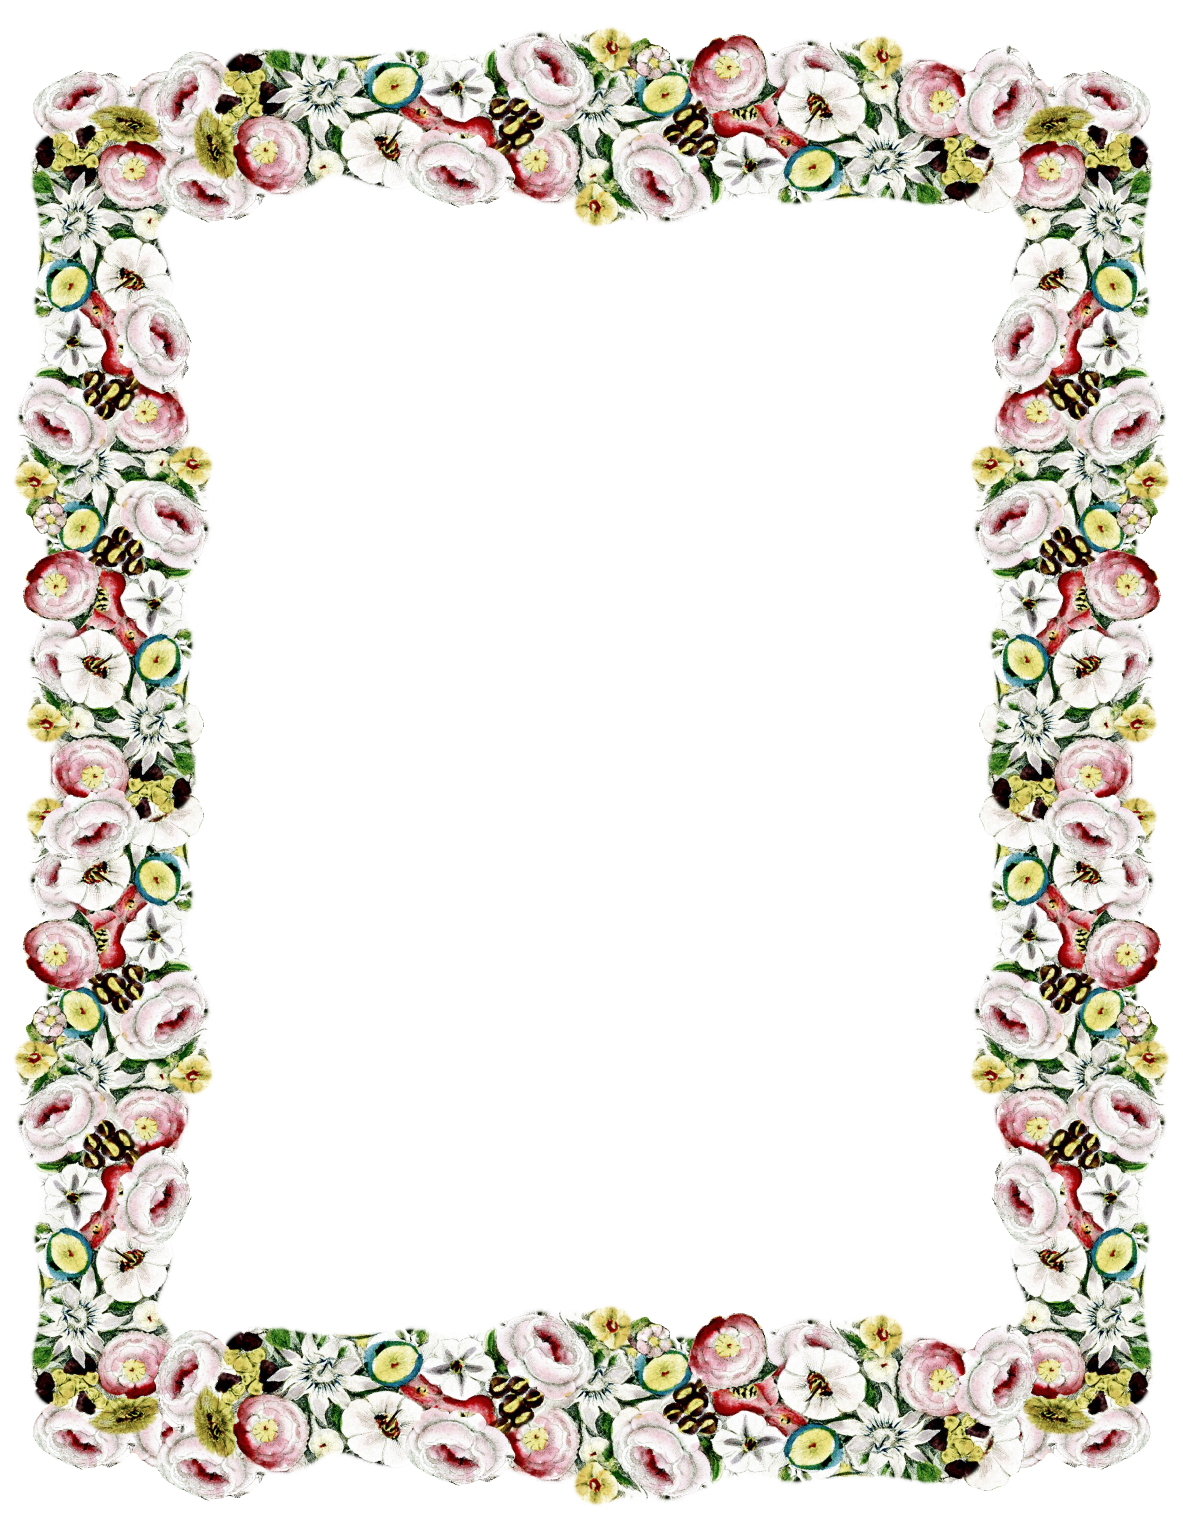 Free Digital Vintage Flower Frame And Border Png